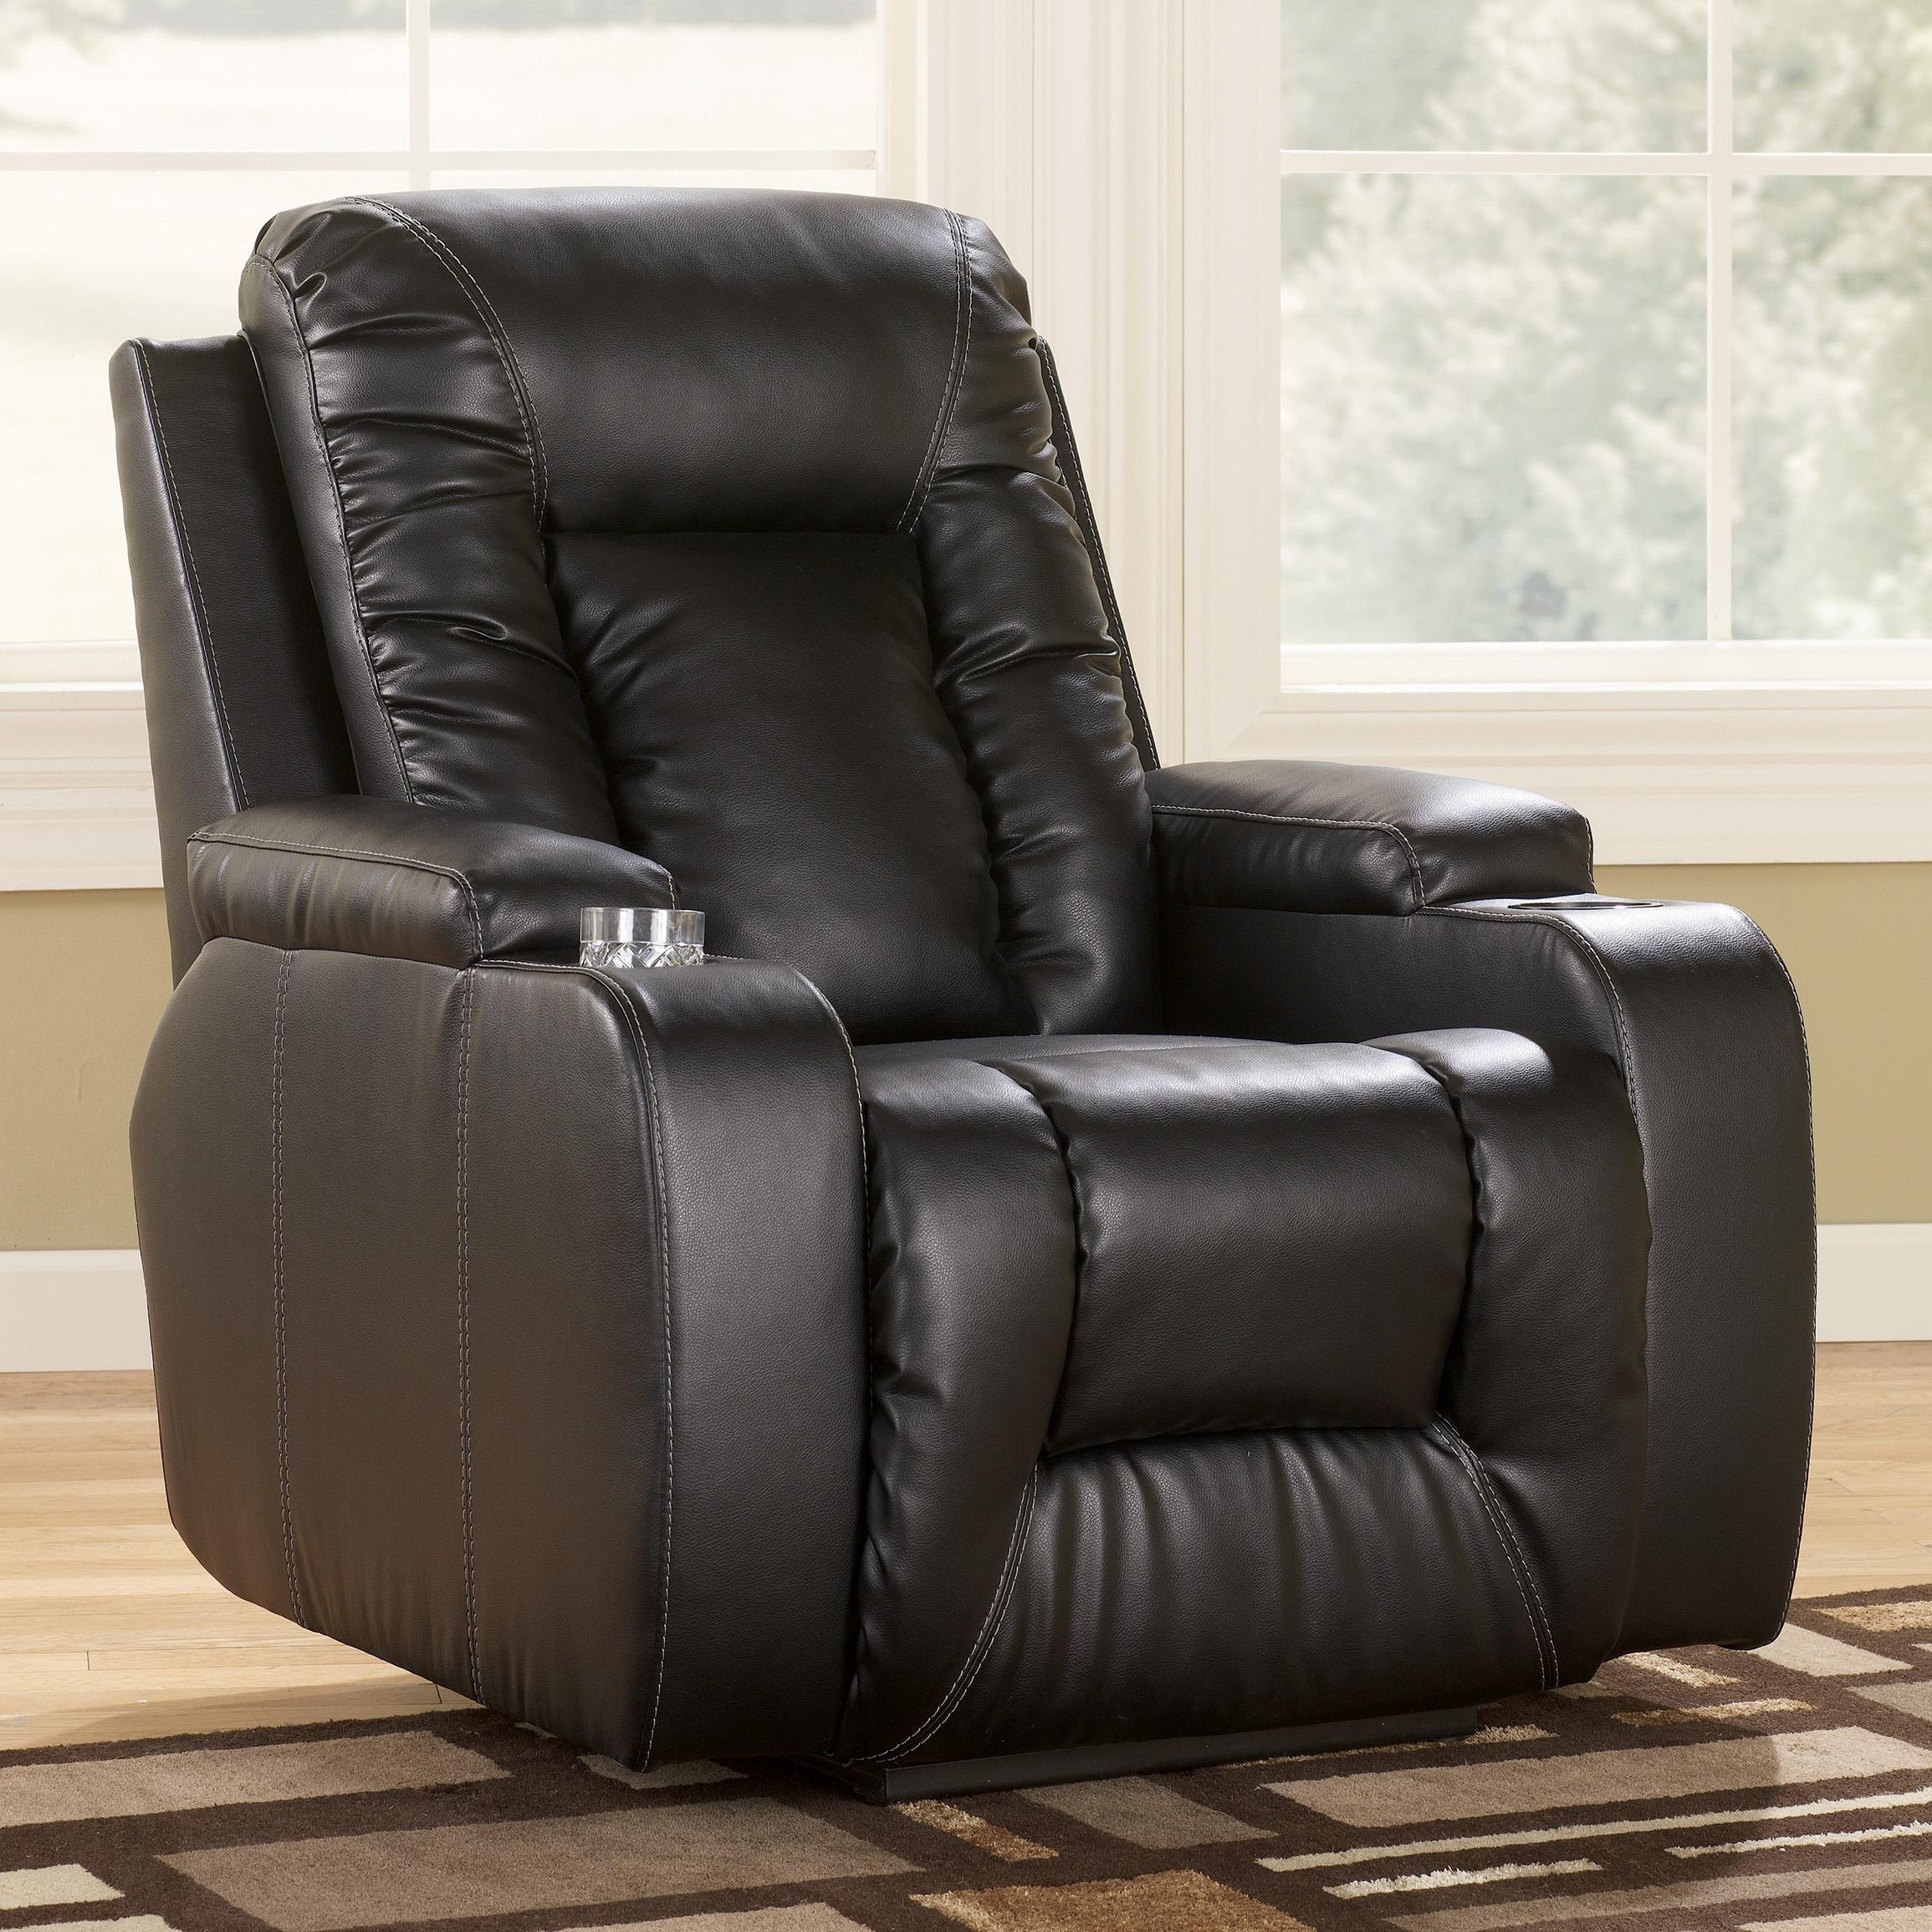 Signature Design by Ashley Matinee DuraBlend® - Eclipse Power Recliner  - Item Number: 8740106